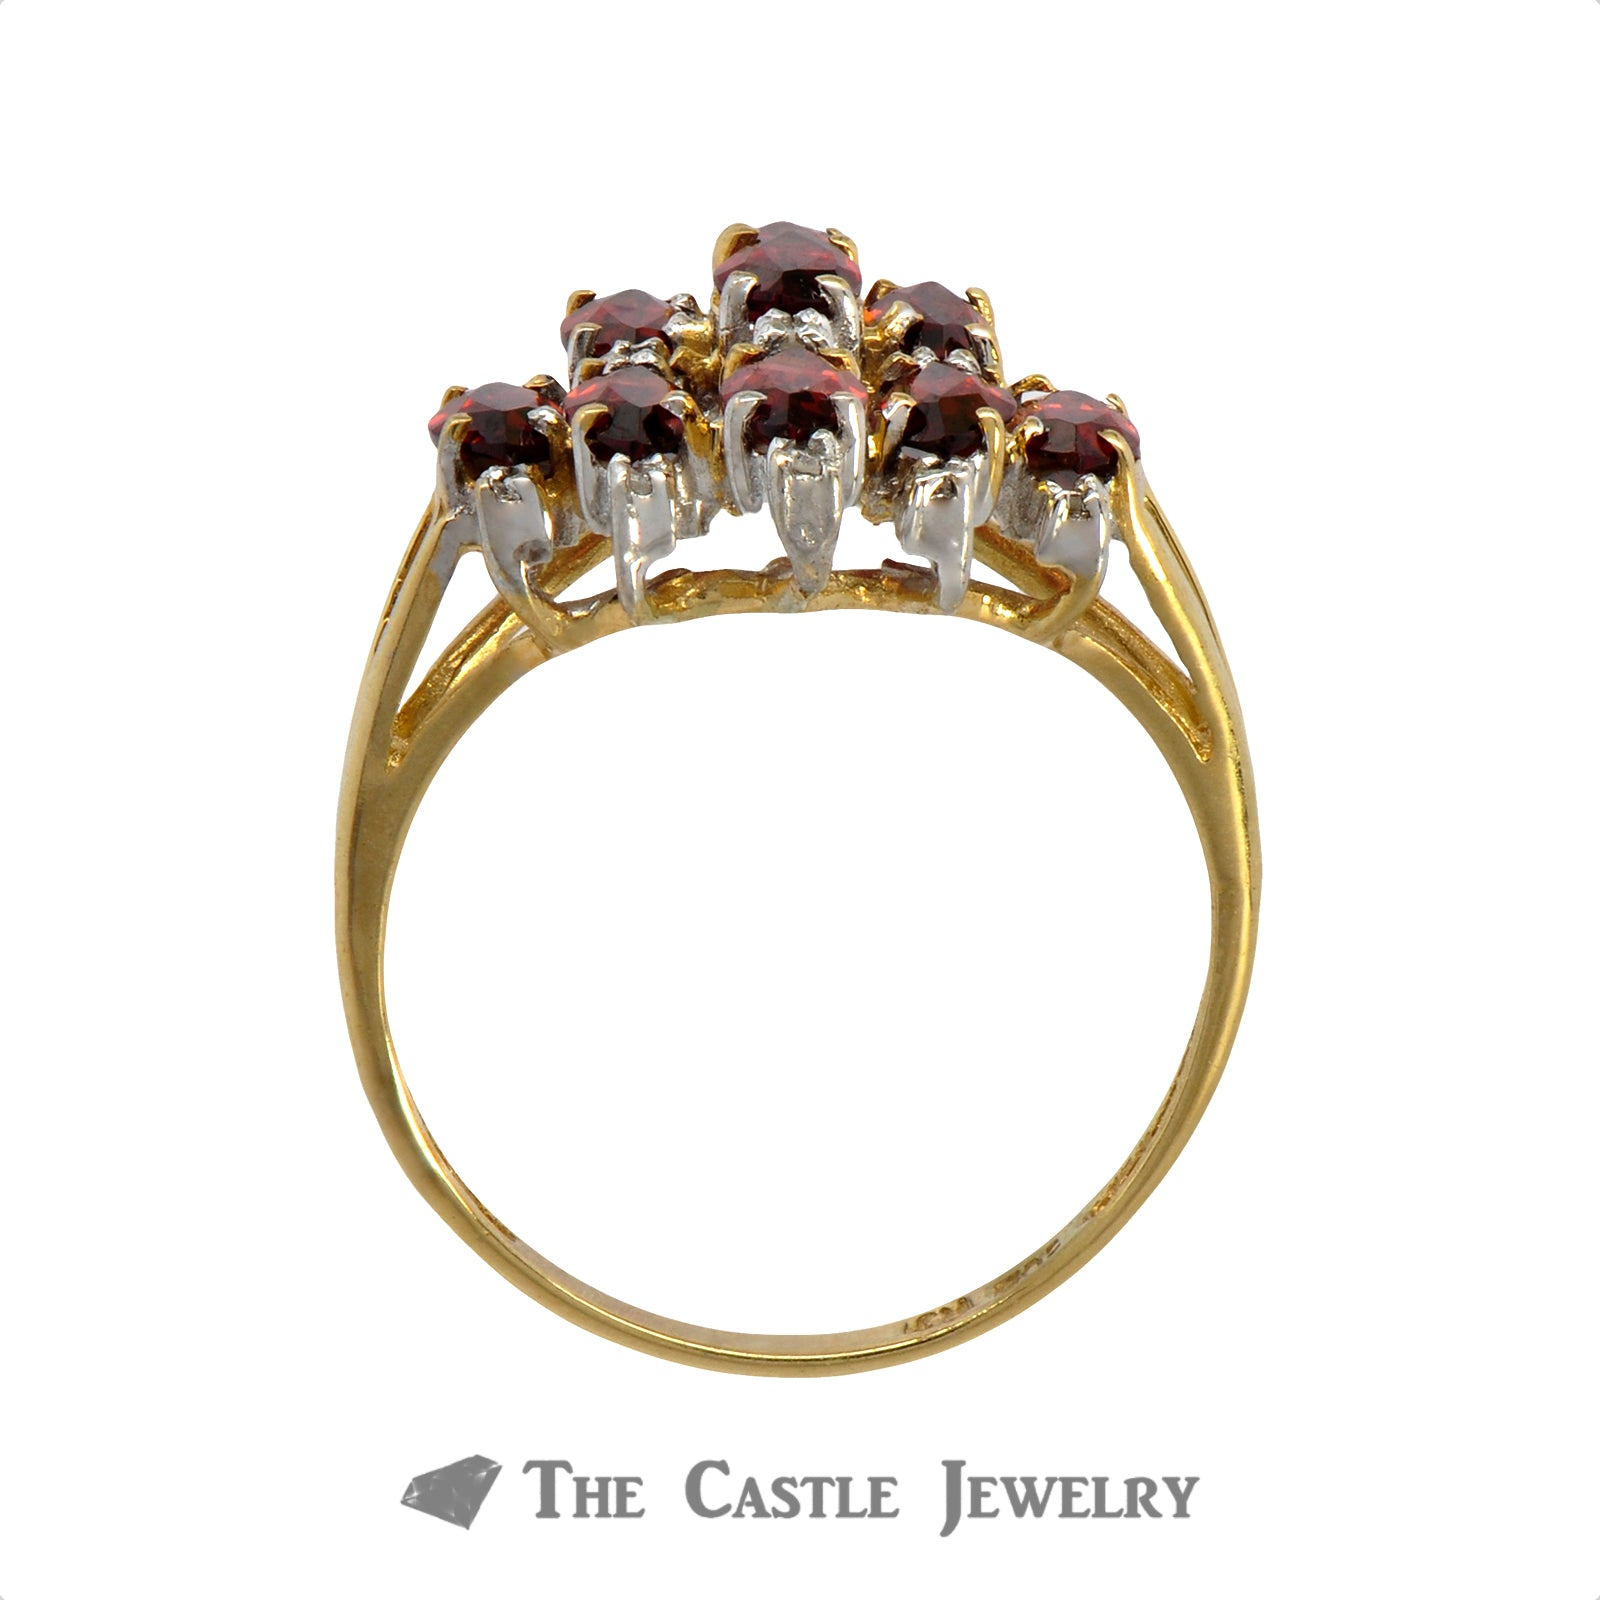 Marquise Shaped Garnet Cluster Ring in 10K Yellow Gold-1